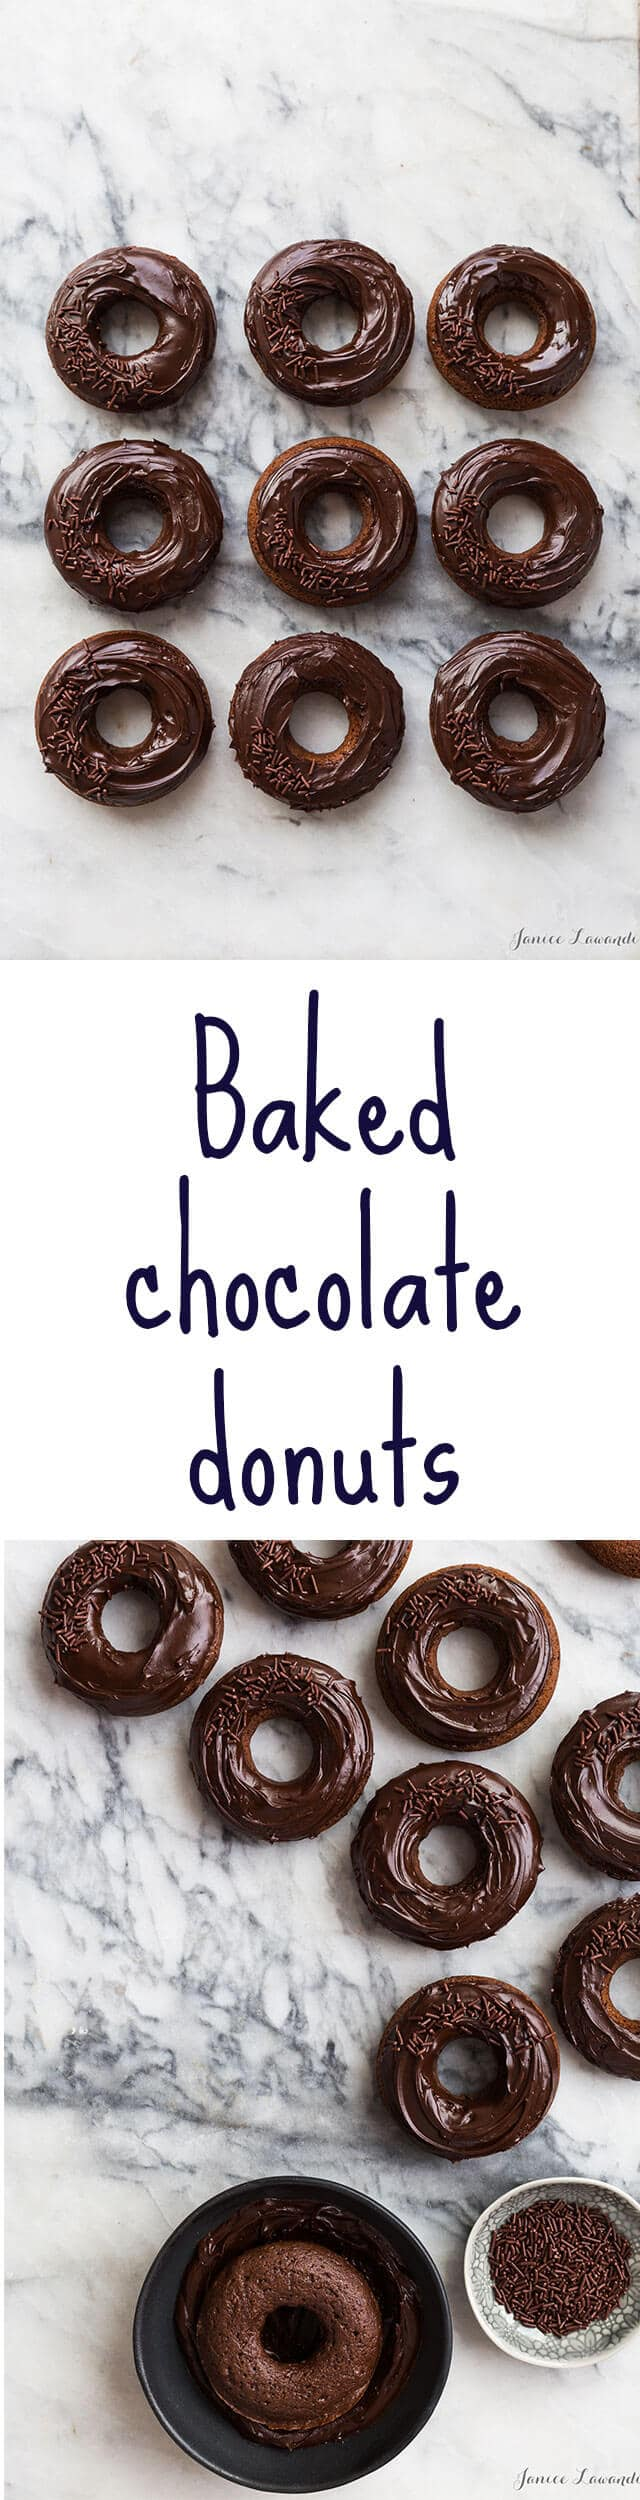 Glazed Chocolate Cake Donuts that are baked donuts, not fried! Easy recipe to make baked chocolate donuts at home. All you need is a donut pan. These chocolate donuts have a dark chocolate glaze.